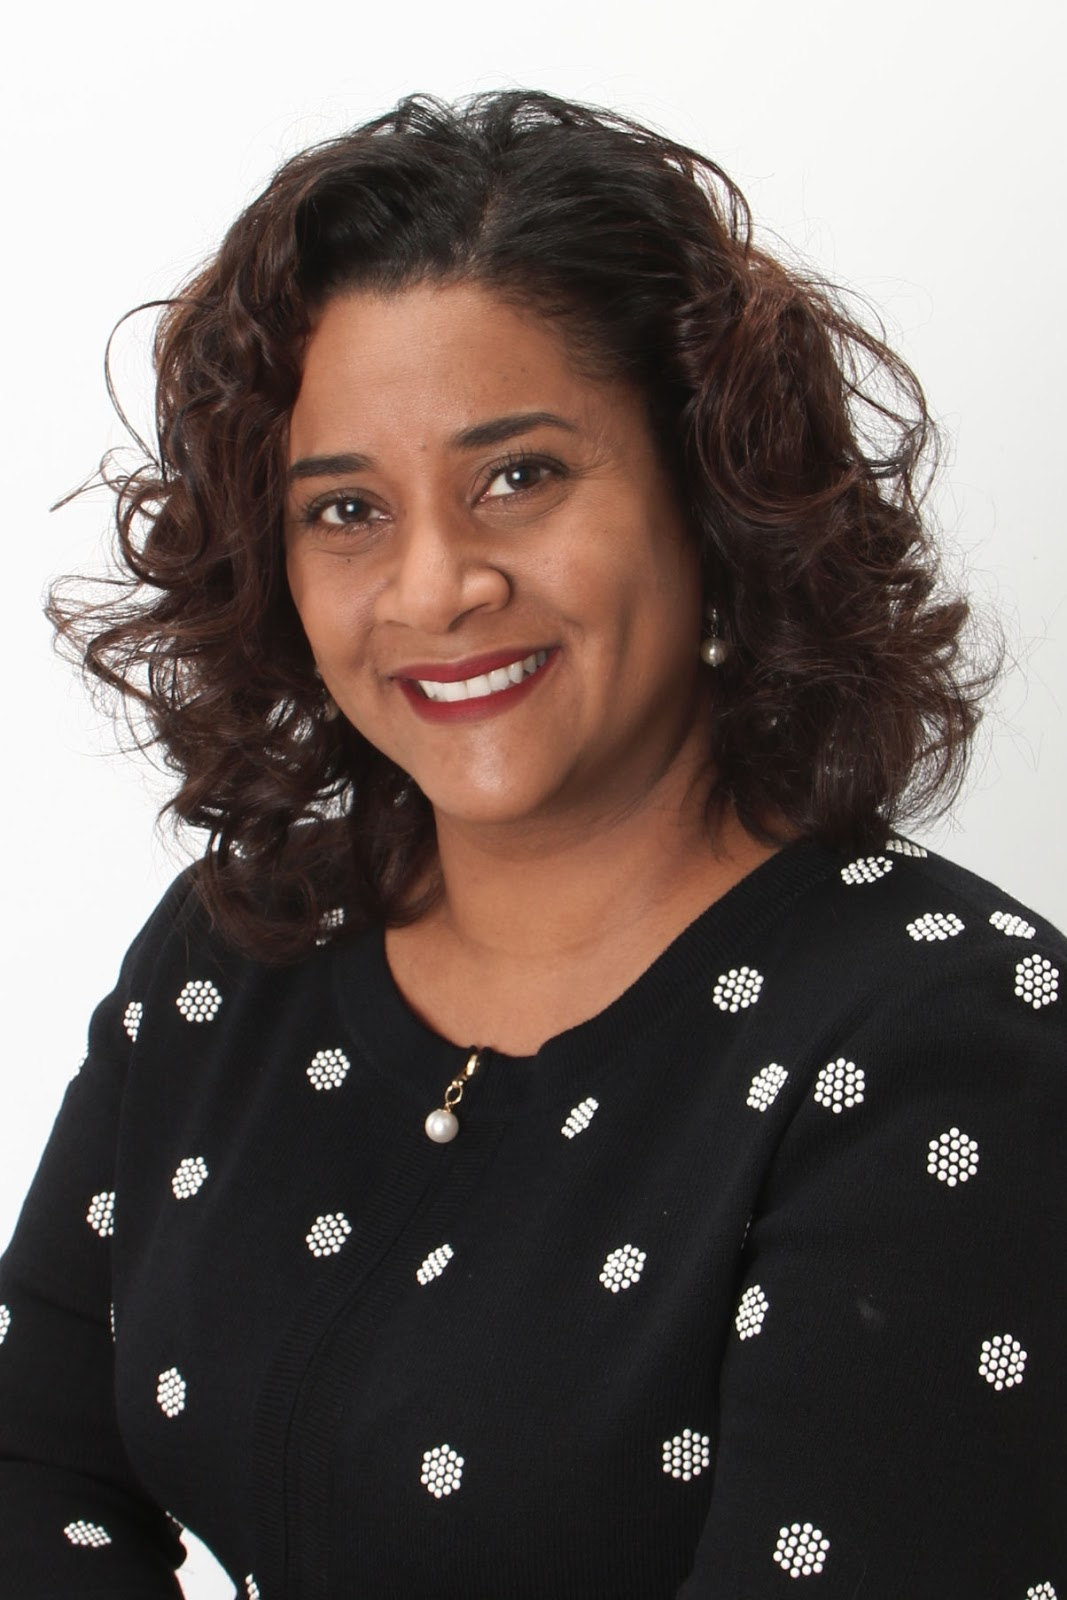 Fulton county government 2017 brigitte bailey named as fulton county director of customer experience solutions xflitez Choice Image